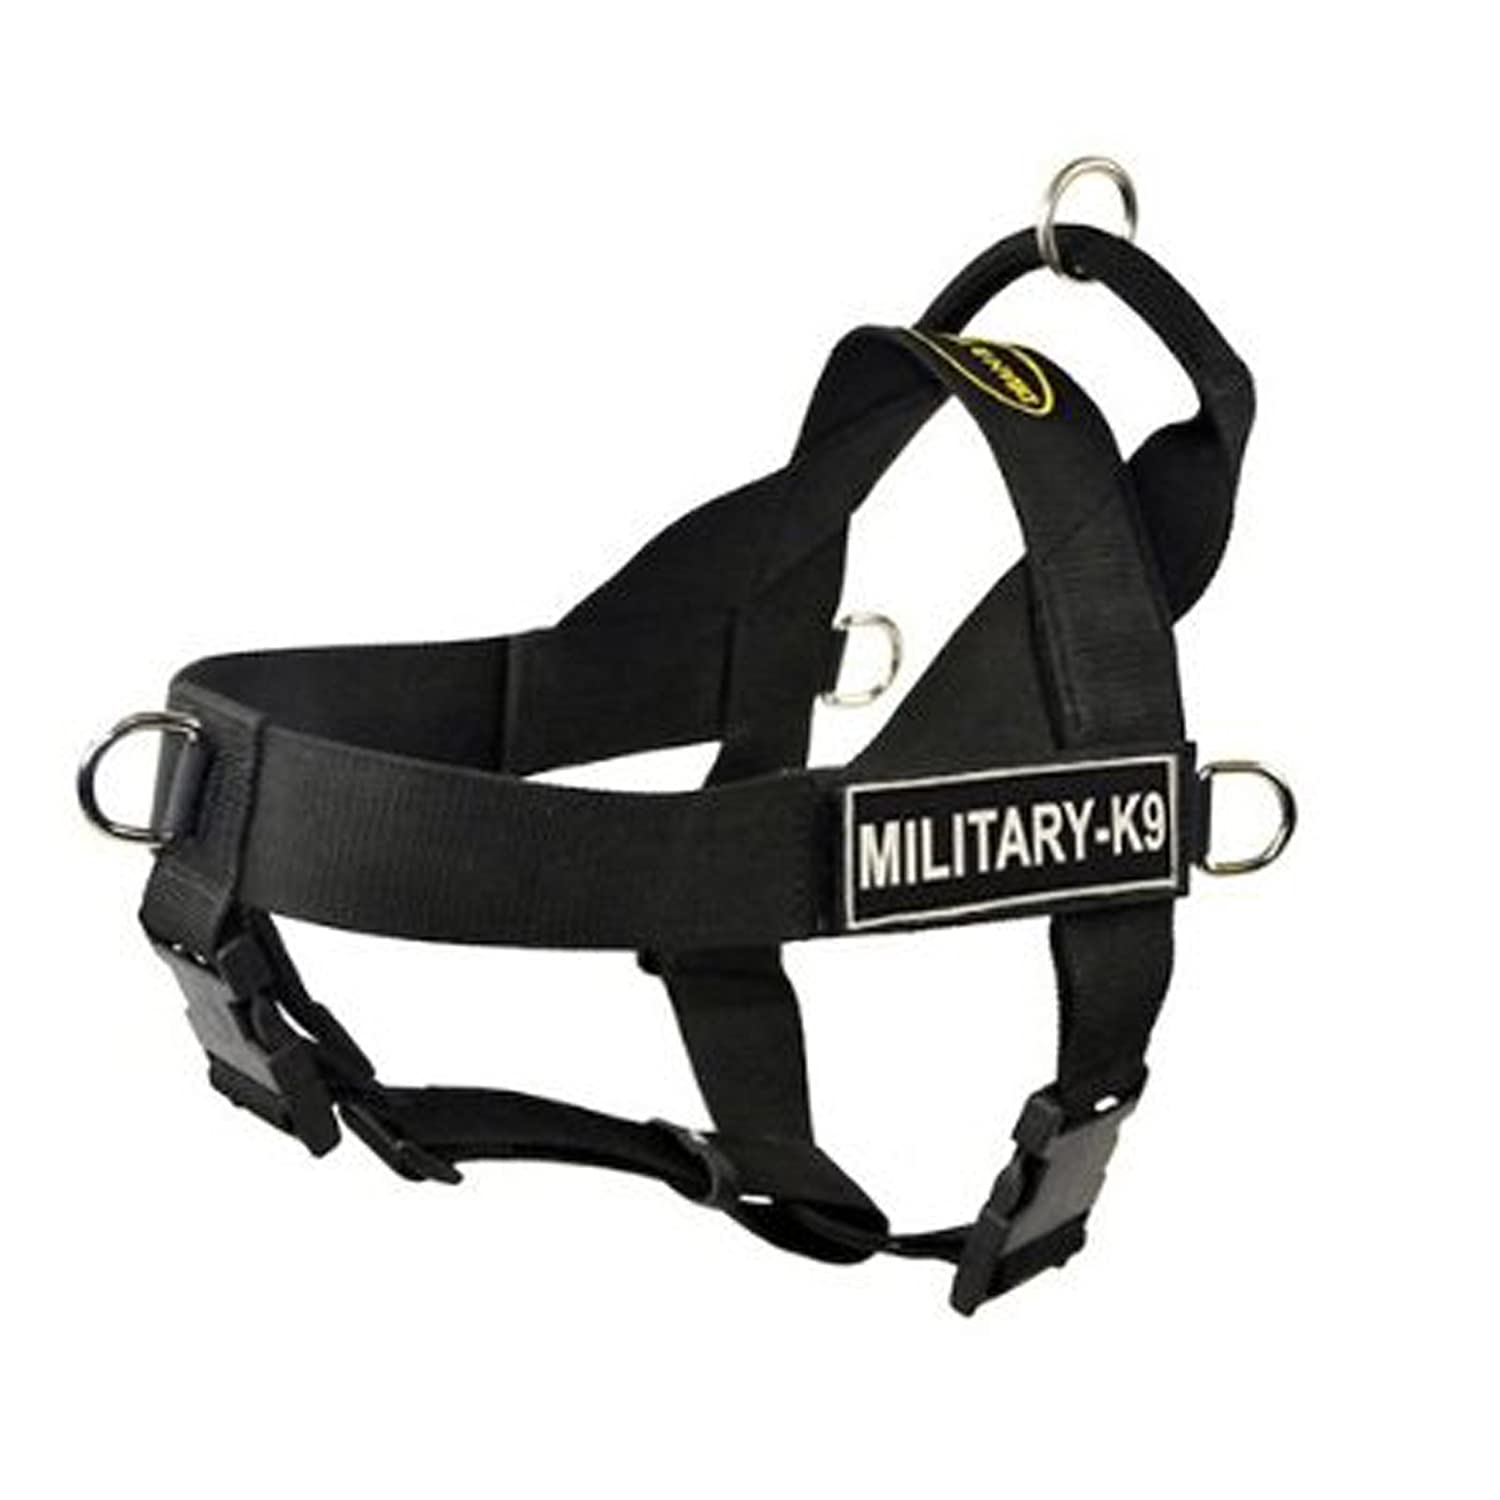 DT Universal No Pull Dog Harness, Military-K9, Black, X-Large Fits Girth Size  37-Inch to 47-Inch